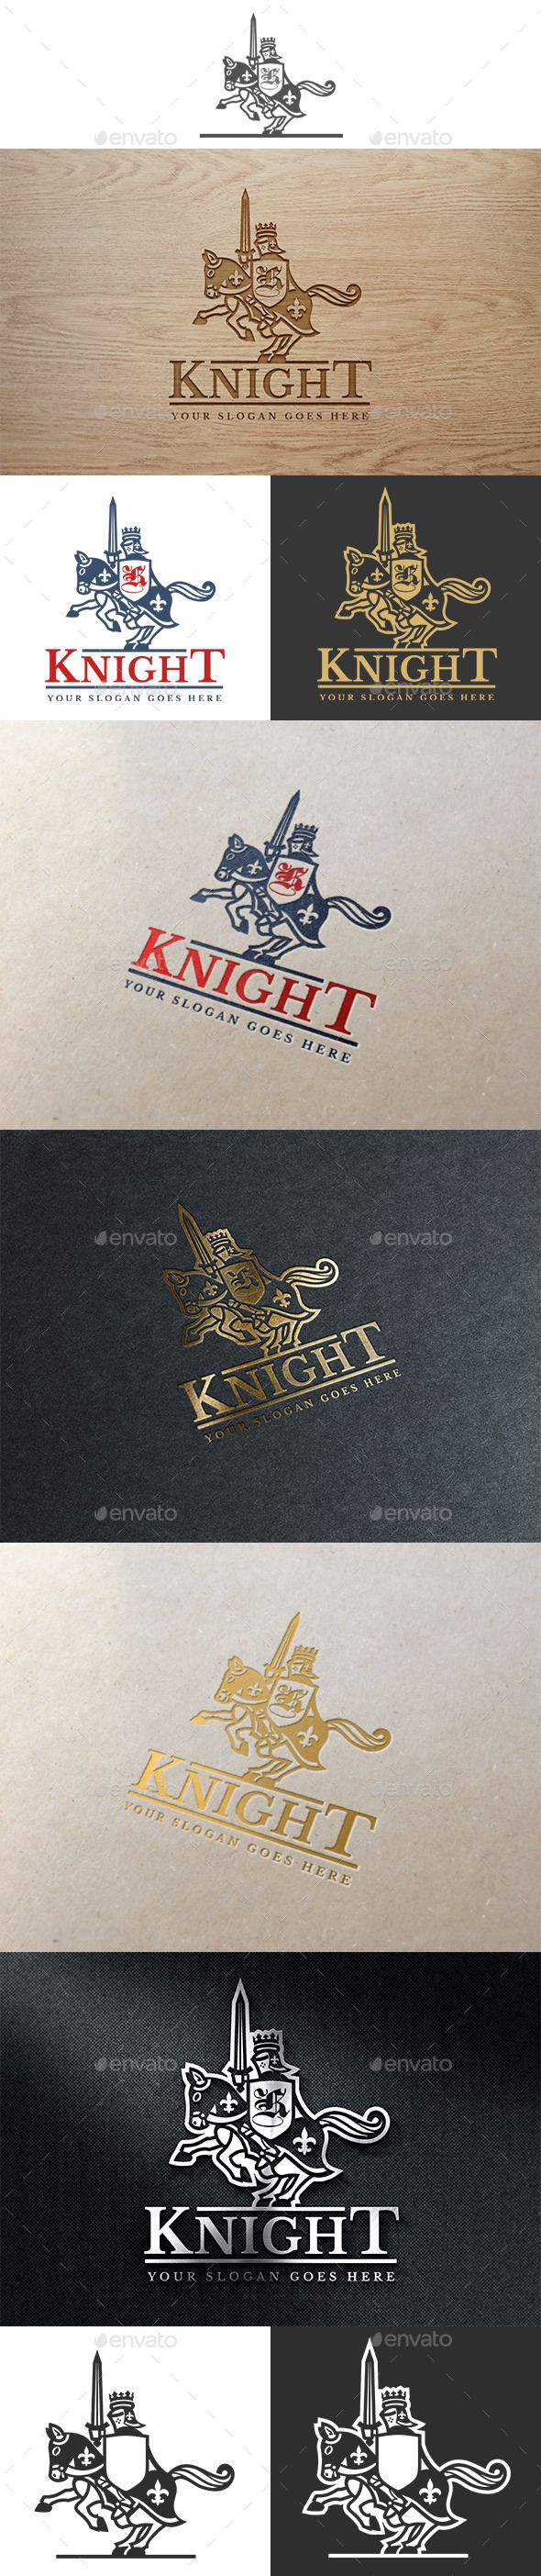 Knight Logo Template Vector EPS, AI, CDR. Download here: http://graphicriver.net/item/knight-logo/12048682?ref=ksioks